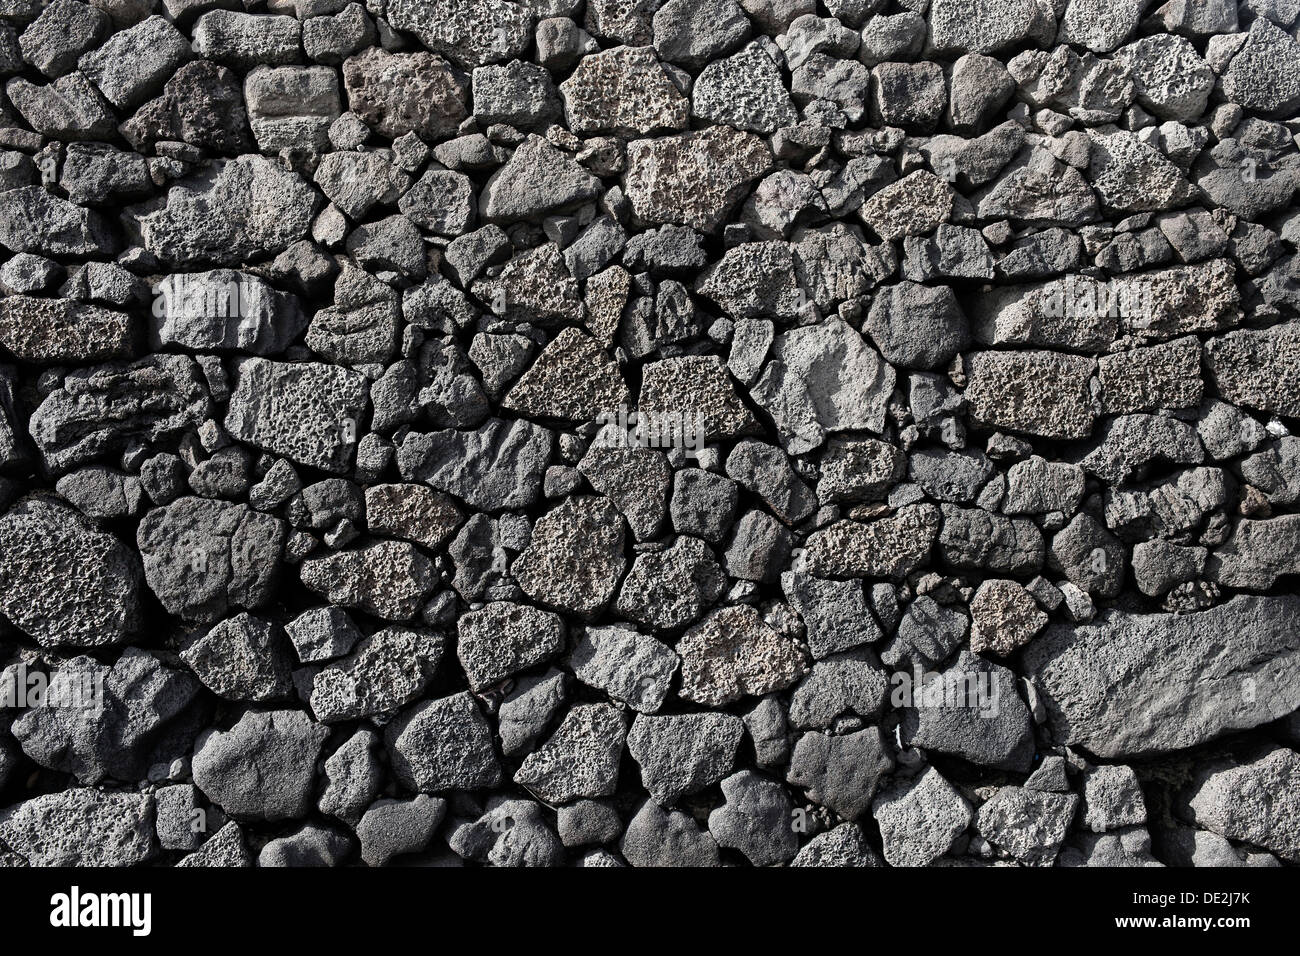 Dry wall constructed from individually stacked lava rocks, typical feature of Lanzarote, Lanzarote, Canary Islands, Spain - Stock Image